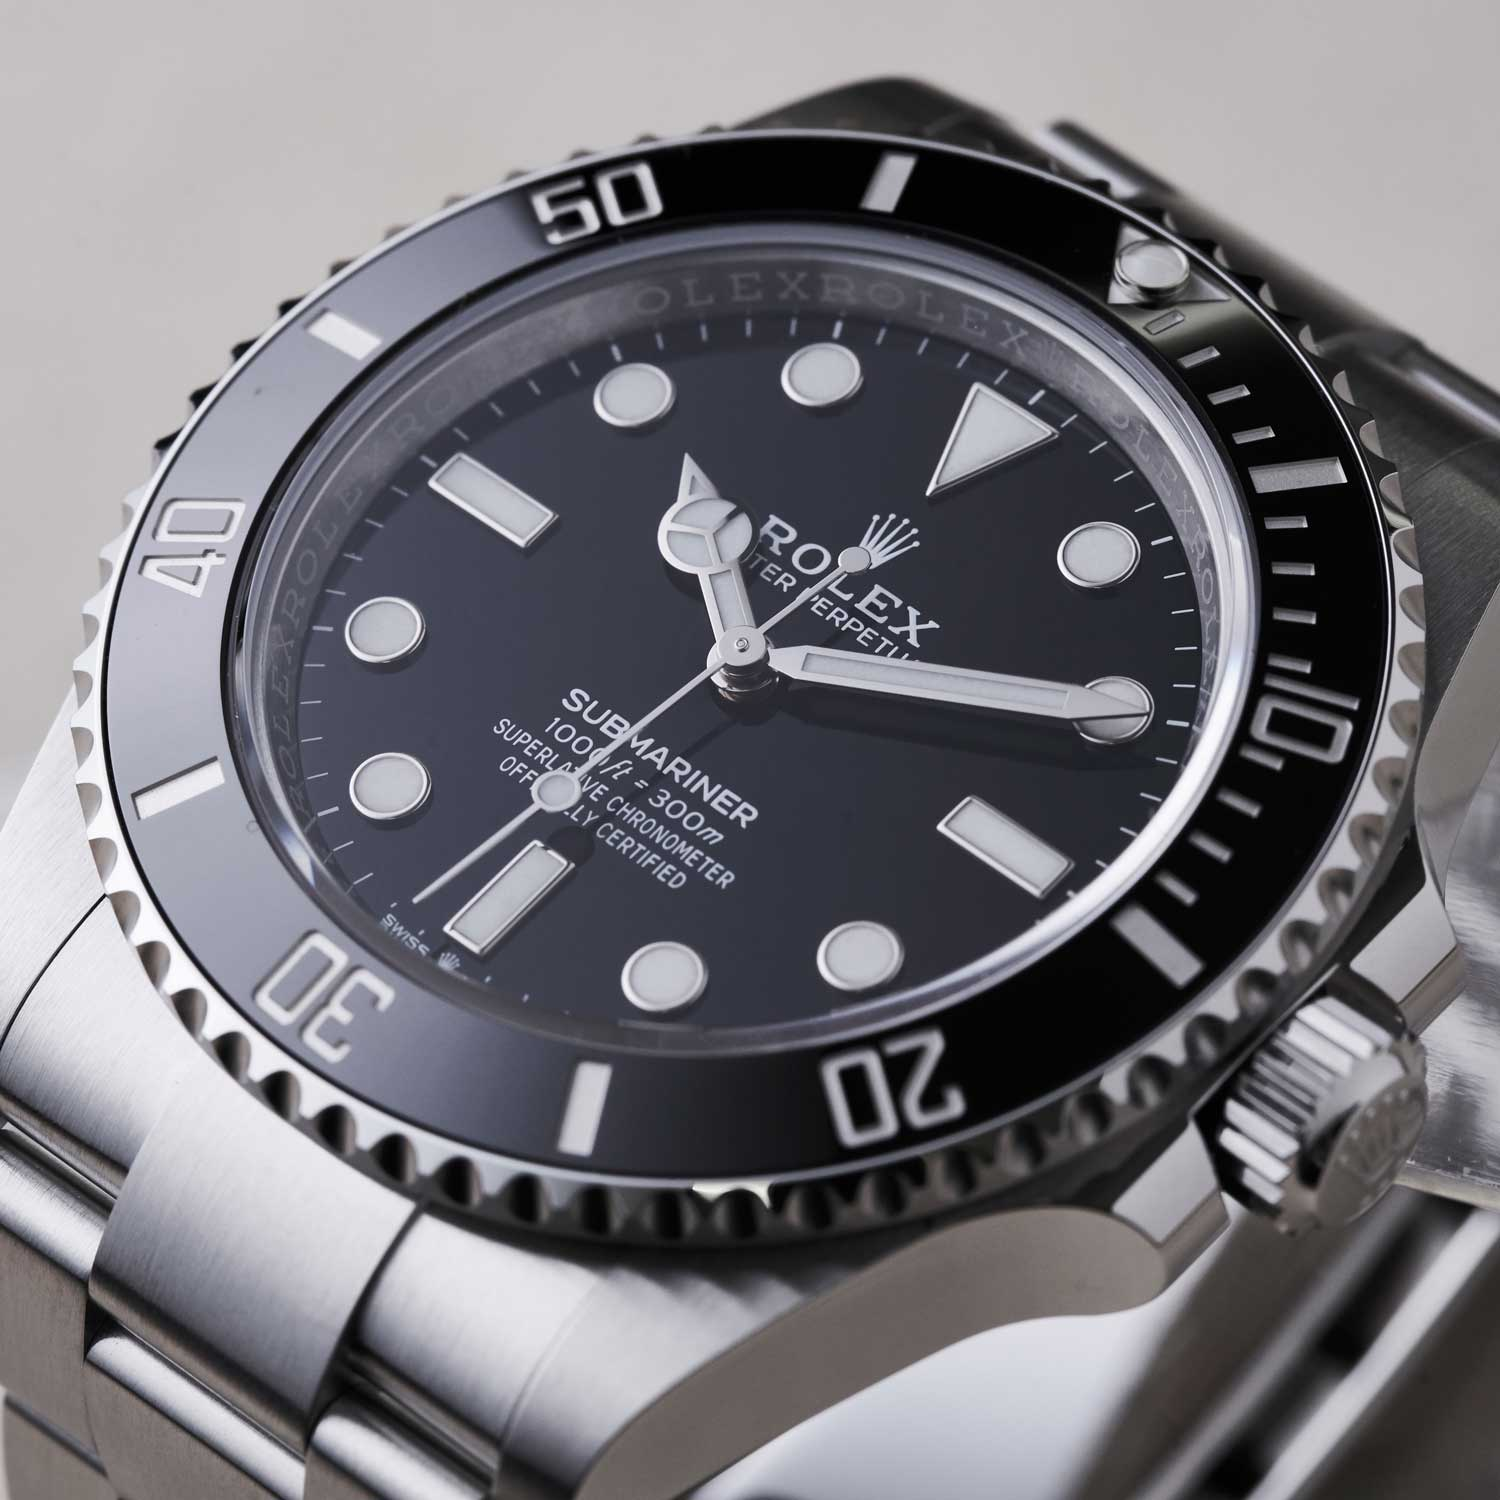 The 2020 no-date Oyster Perpetual Submariner ref. 124060 has a Maxi-style dial with its Chromalight lume contained within applied white gold (©Revolution)